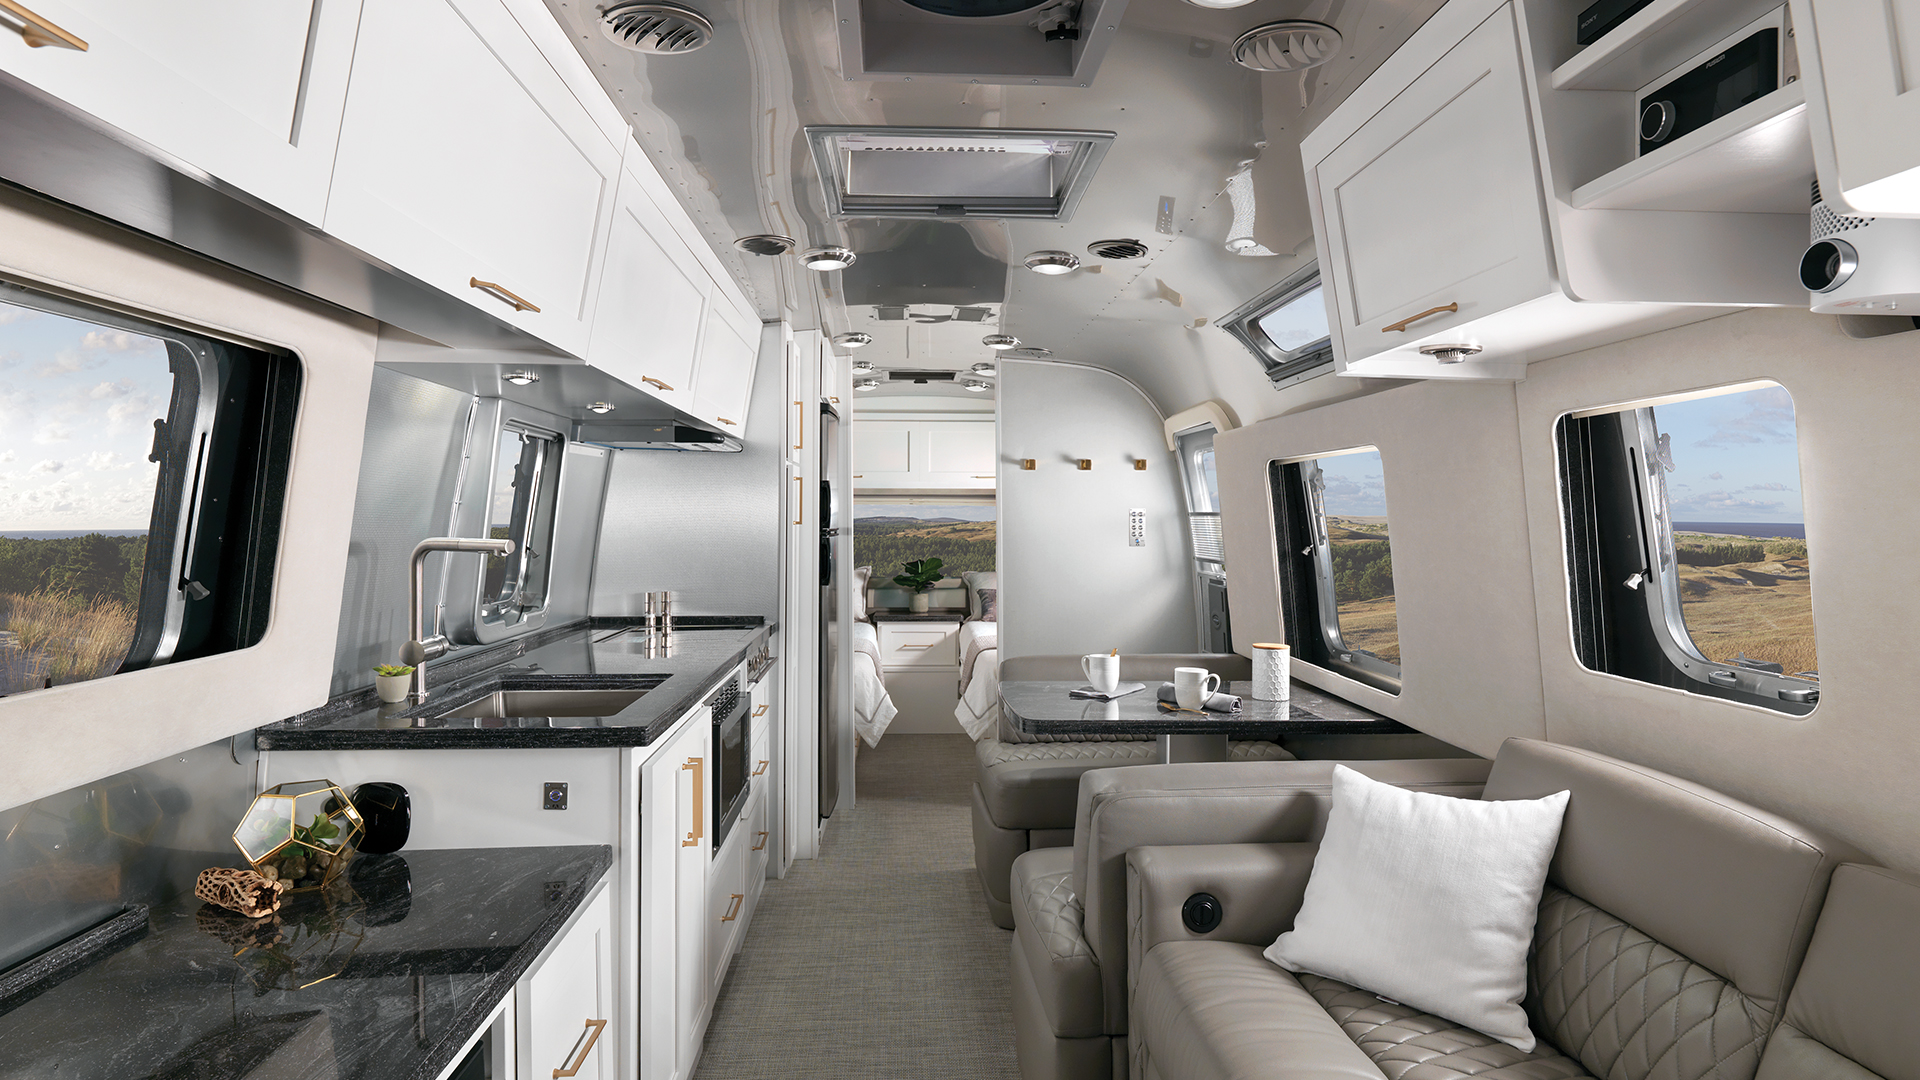 2020-Airstream-Classic-Comfort-White-33FB-Interior